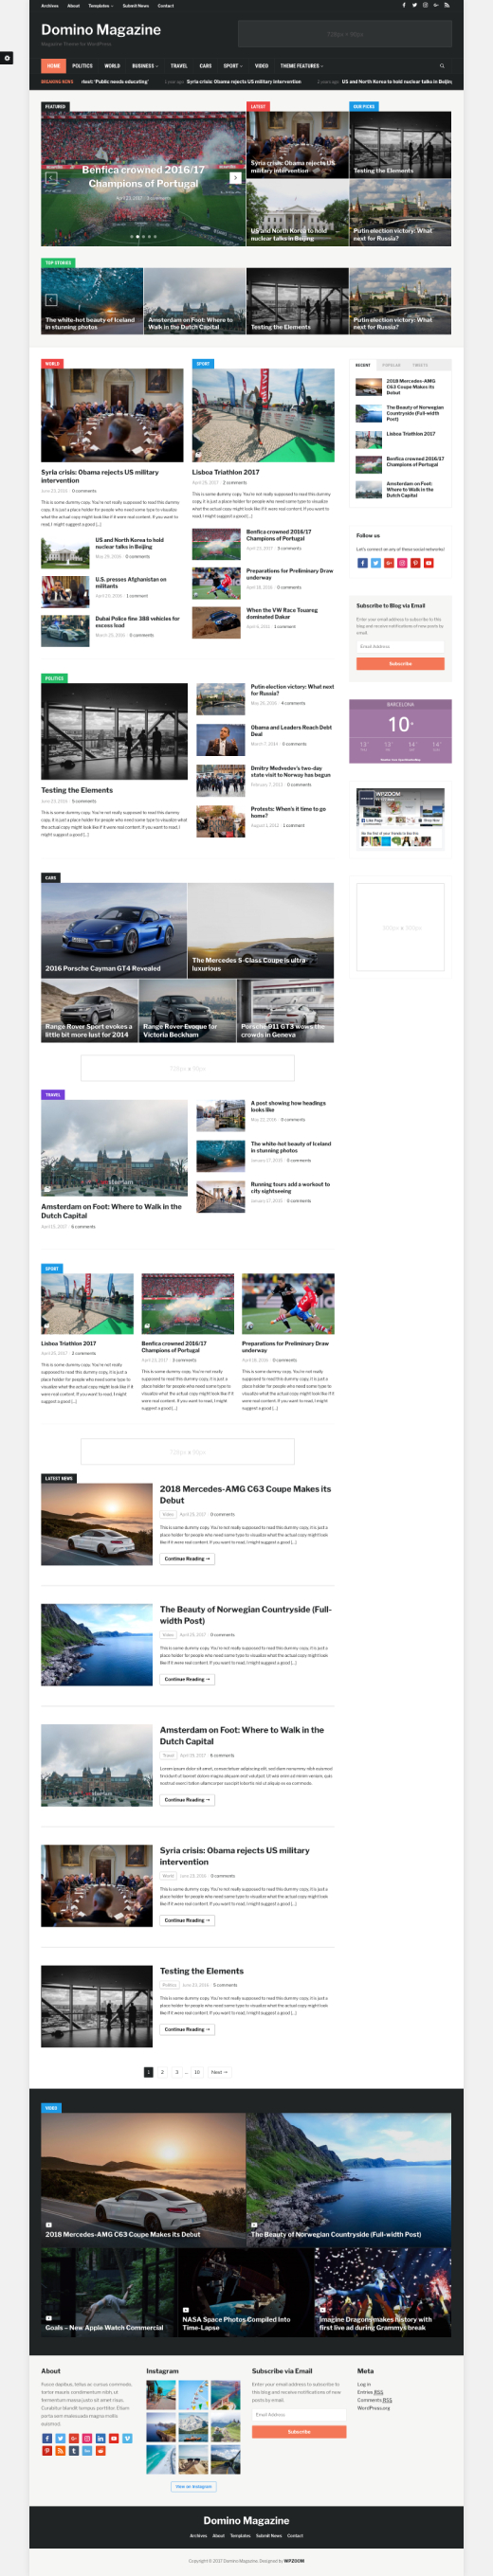 Domino Magazine • best magazine WordPress theme – WPZOOM